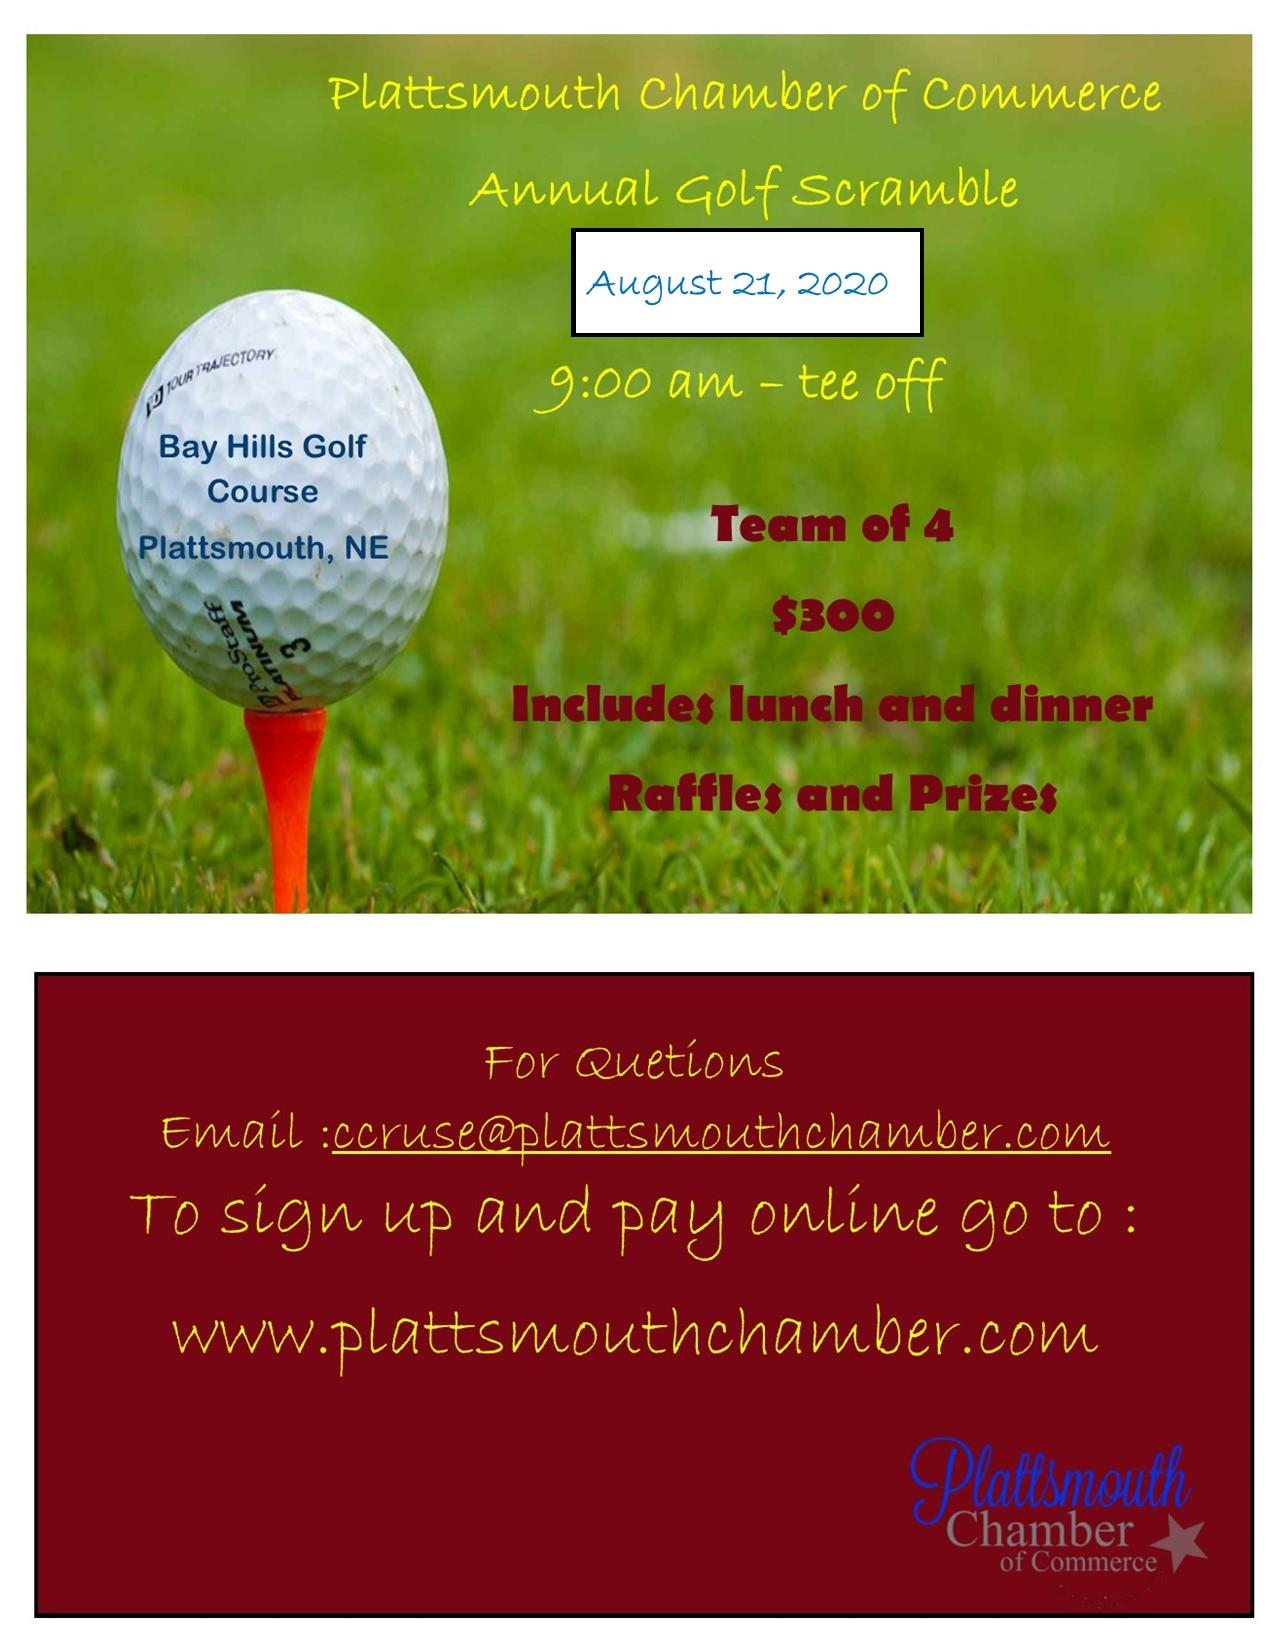 golf scramble august